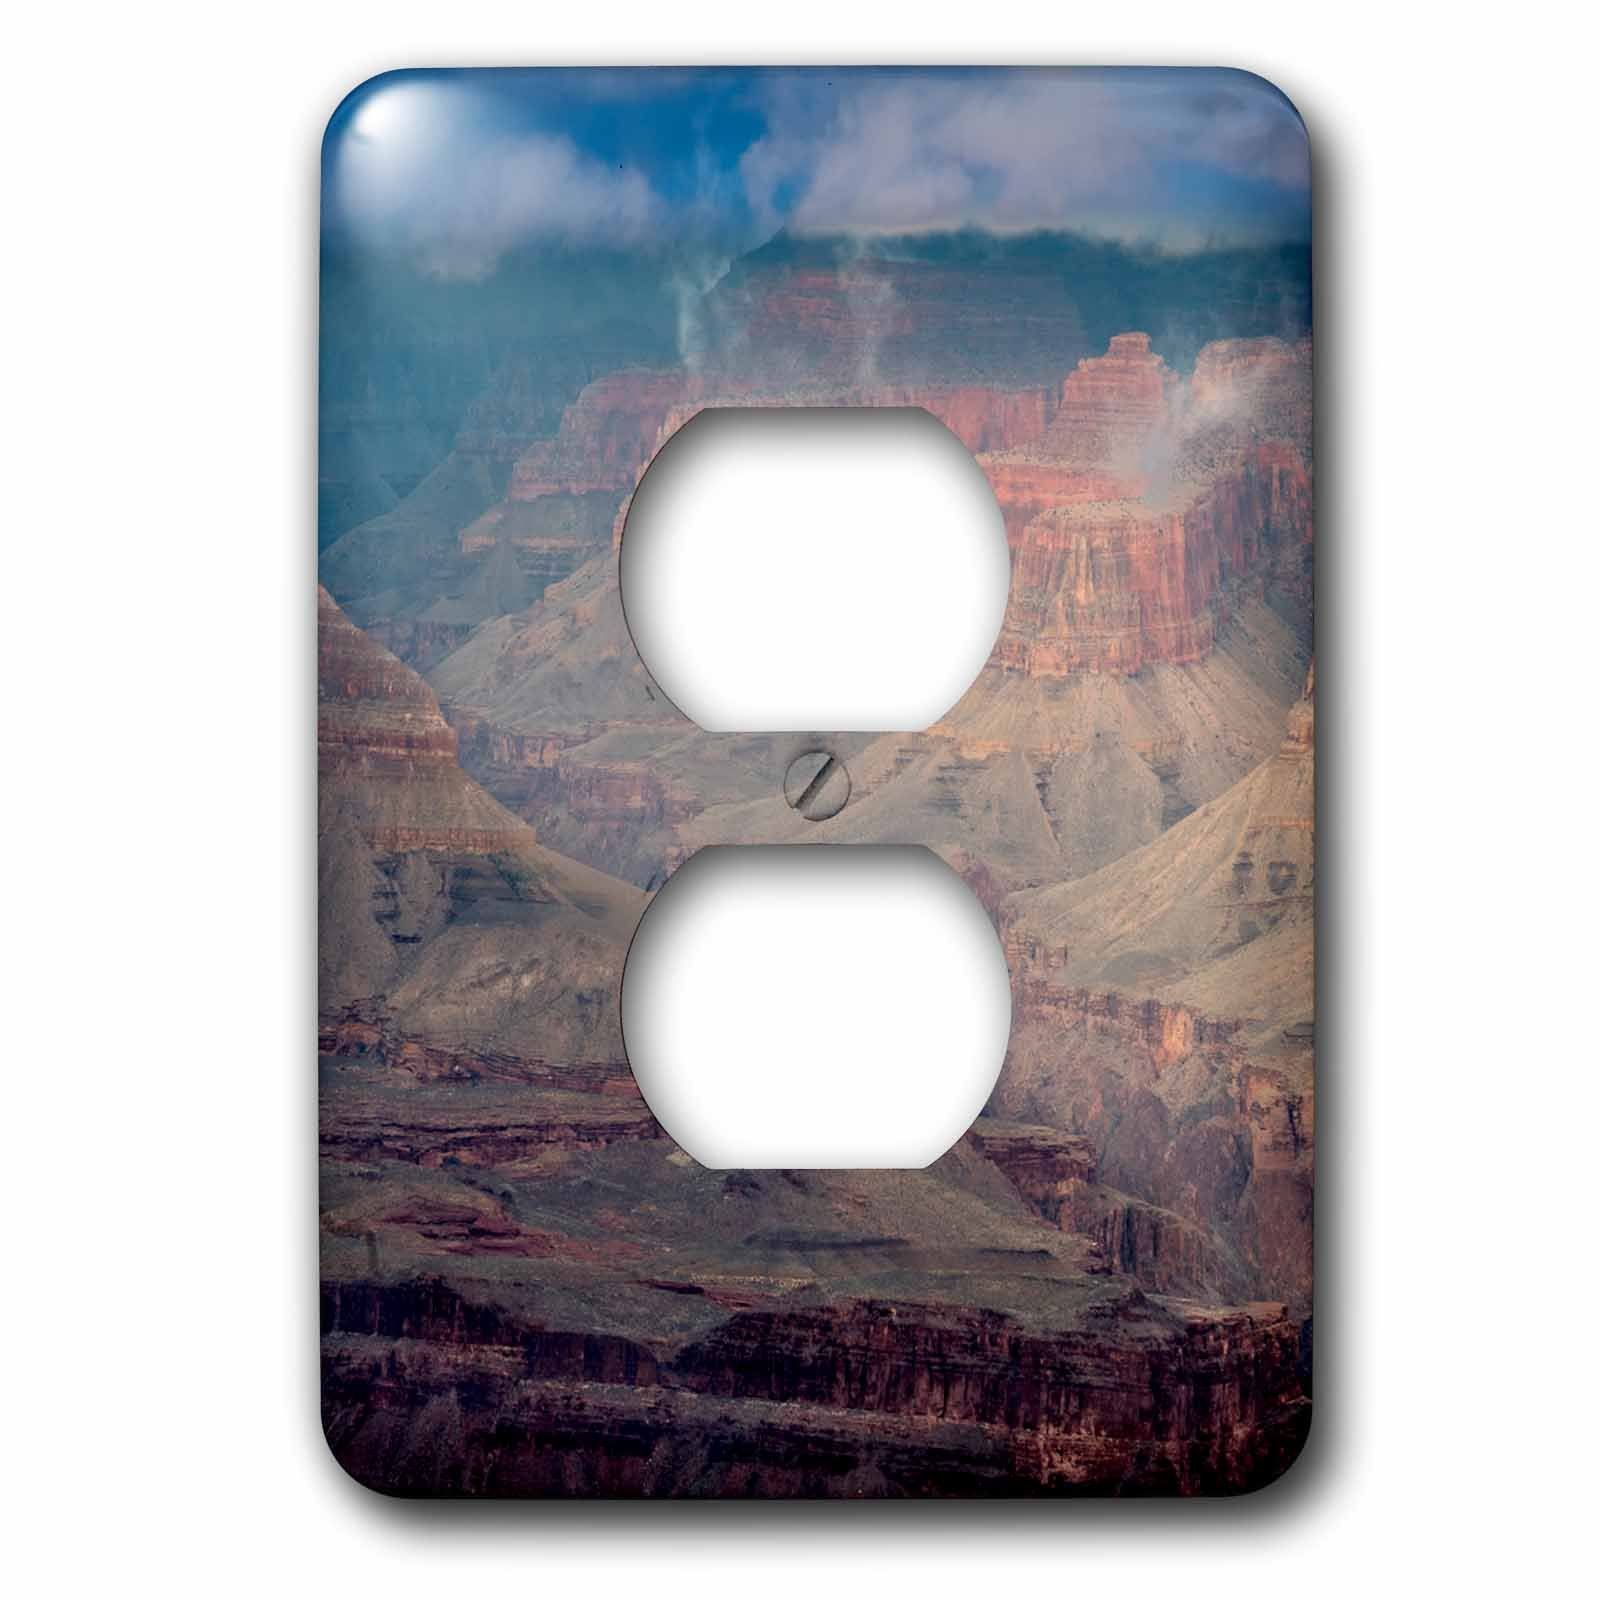 3dRose Danita Delimont - Arizona - USA, Arizona, Grand Canyon National Park. Overview of canyon. - Light Switch Covers - 2 plug outlet cover (lsp_278444_6)